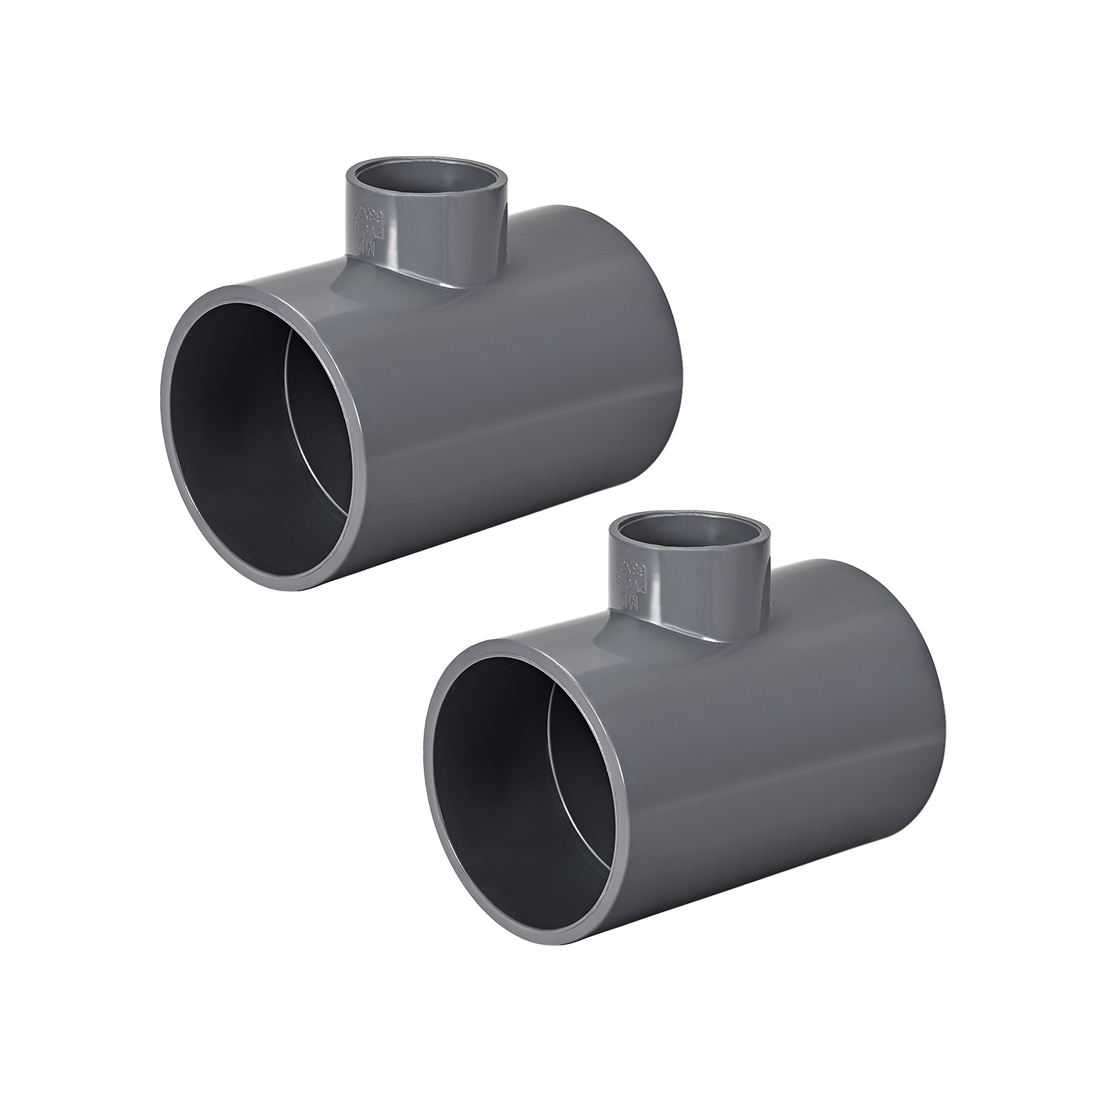 PVC Pipe Fitting Tee 401-Series Gray 1-1/4inch x 2-1/2inch Socket 2pcs